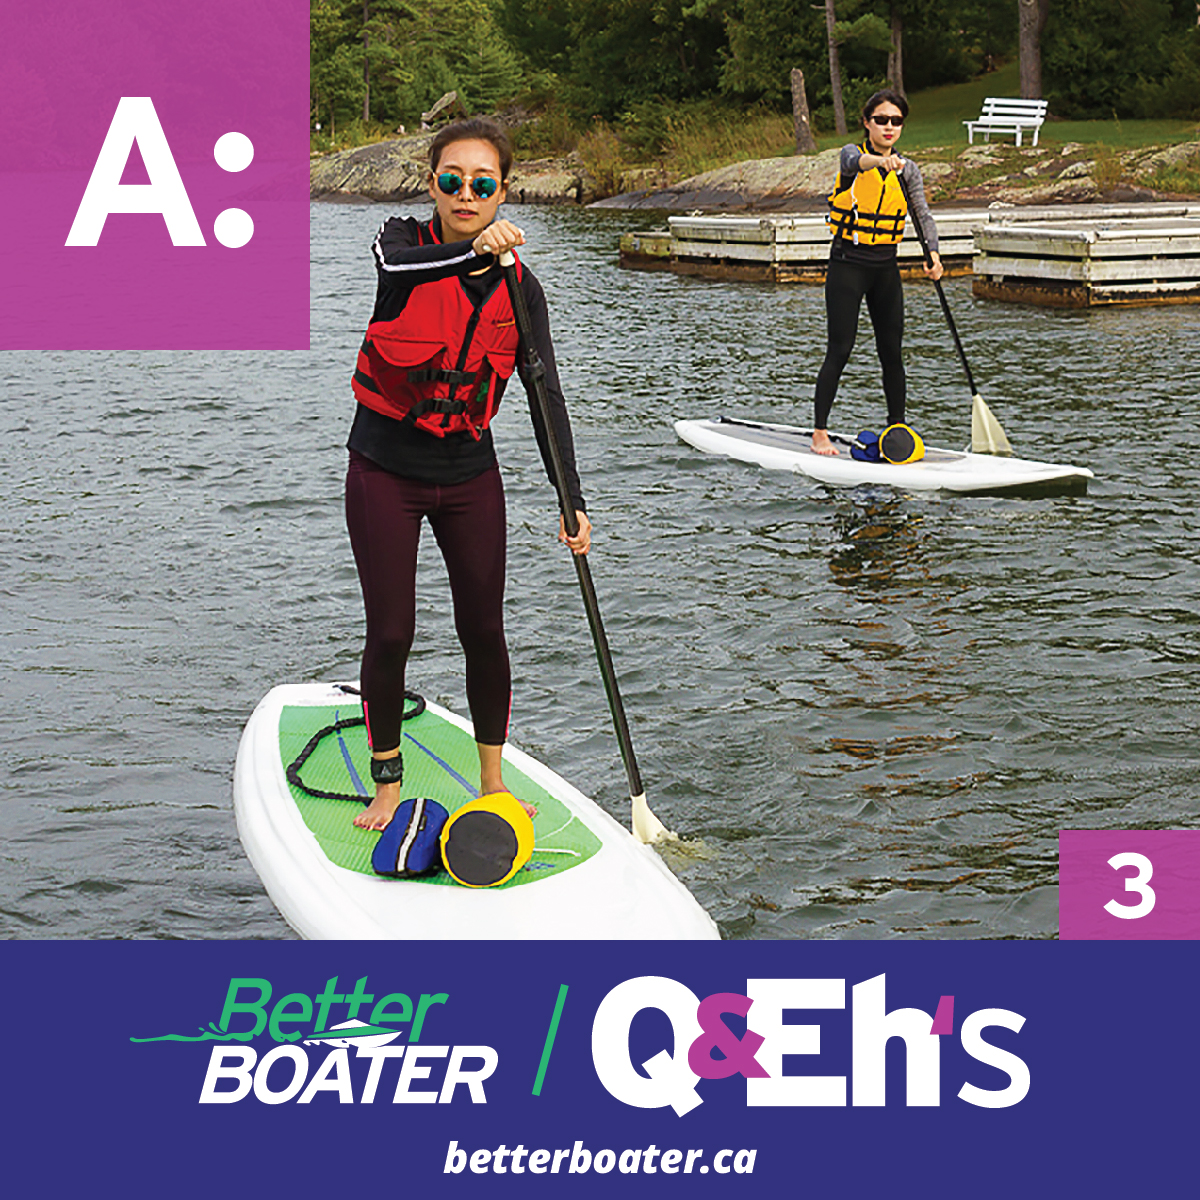 https://betterboater.ca/Q&Eh:%20SUP%20Impared